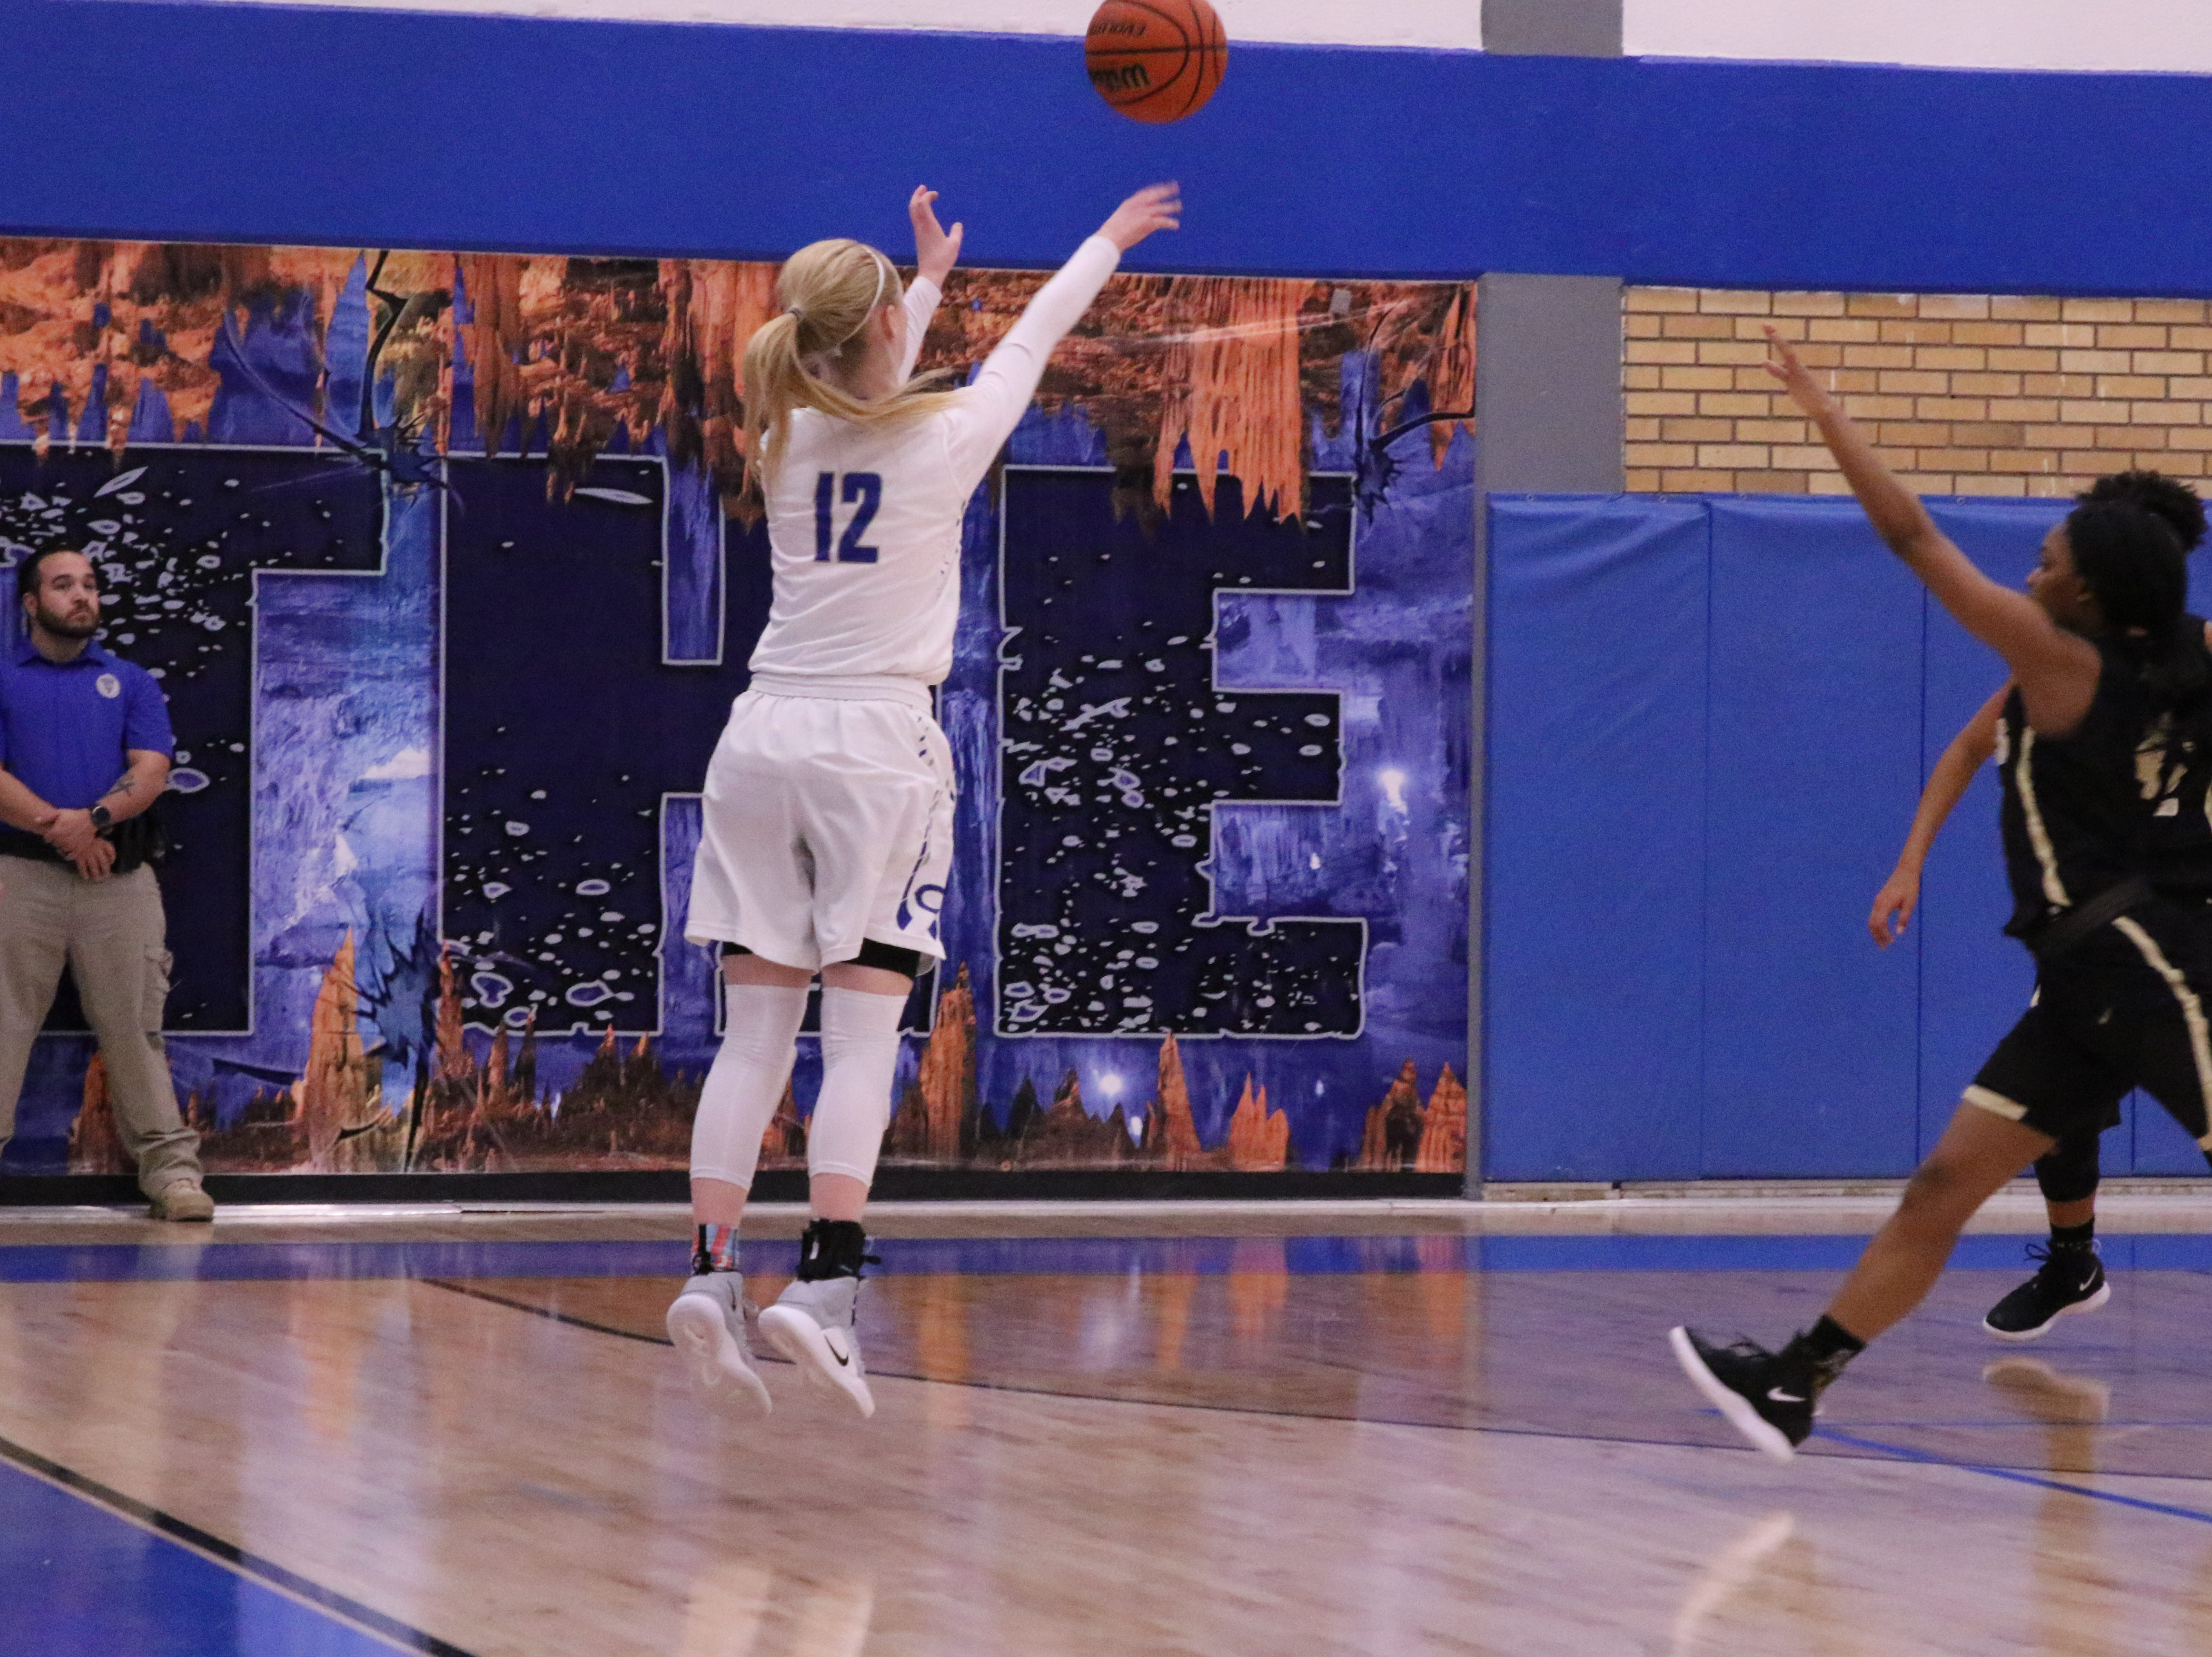 Carsyn Boswell takes an uncontested 3-point shot during Friday's game. She finished with 14 points.